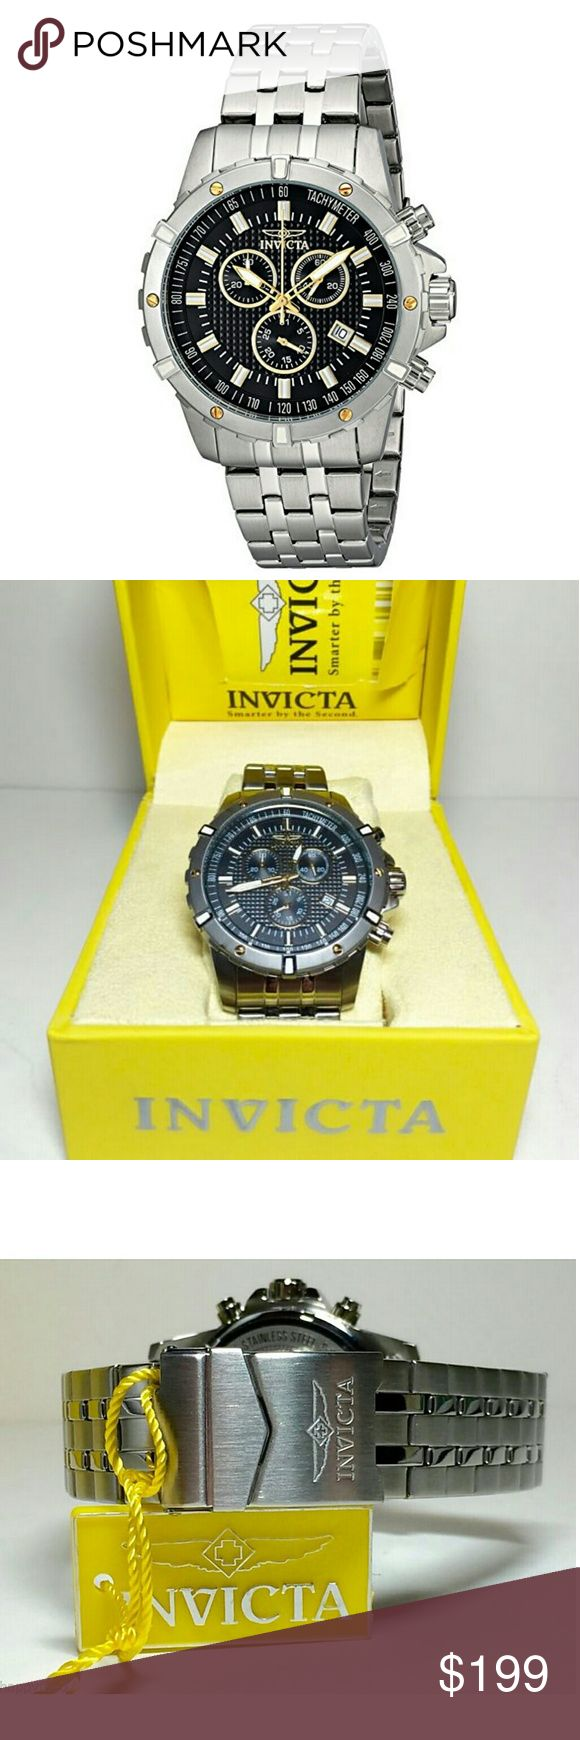 NWT Invicta $600 chronograph men's watch INVICTA  Invicta $600 Chronograph Black Dial Mens Watch.    Firm price firm price firm price firm price?  $229.00  . AUTHENTIC WATCH  . AUTHENTIC BOX  . AUTHENTIC MANUAL    SHIPPING?  PLEASE ALLOW FEW BUSINESS DAYS FOR ME TO SHIPPED IT OFF.I HAVE TO GET IT FROM MY WAREHOUSE.    THANK YOU FOR YOUR UNDERSTANDING. Invicta Accessories Watches